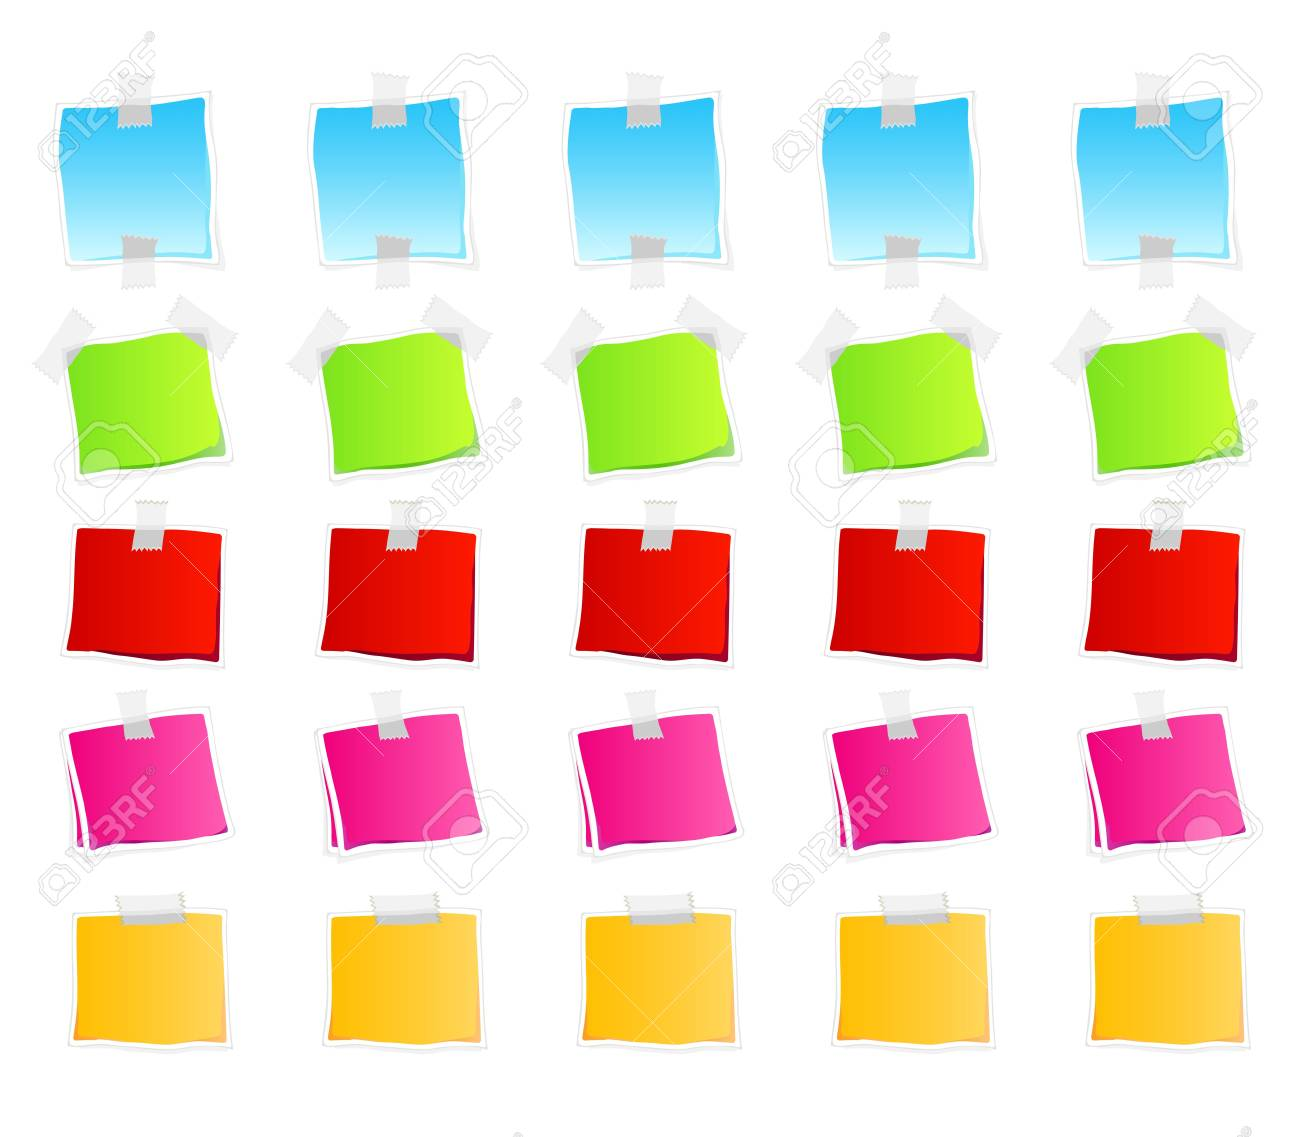 Vector illustration of sticky retail notes. 25 elements in various colorful versions. Stock Photo - 3496503